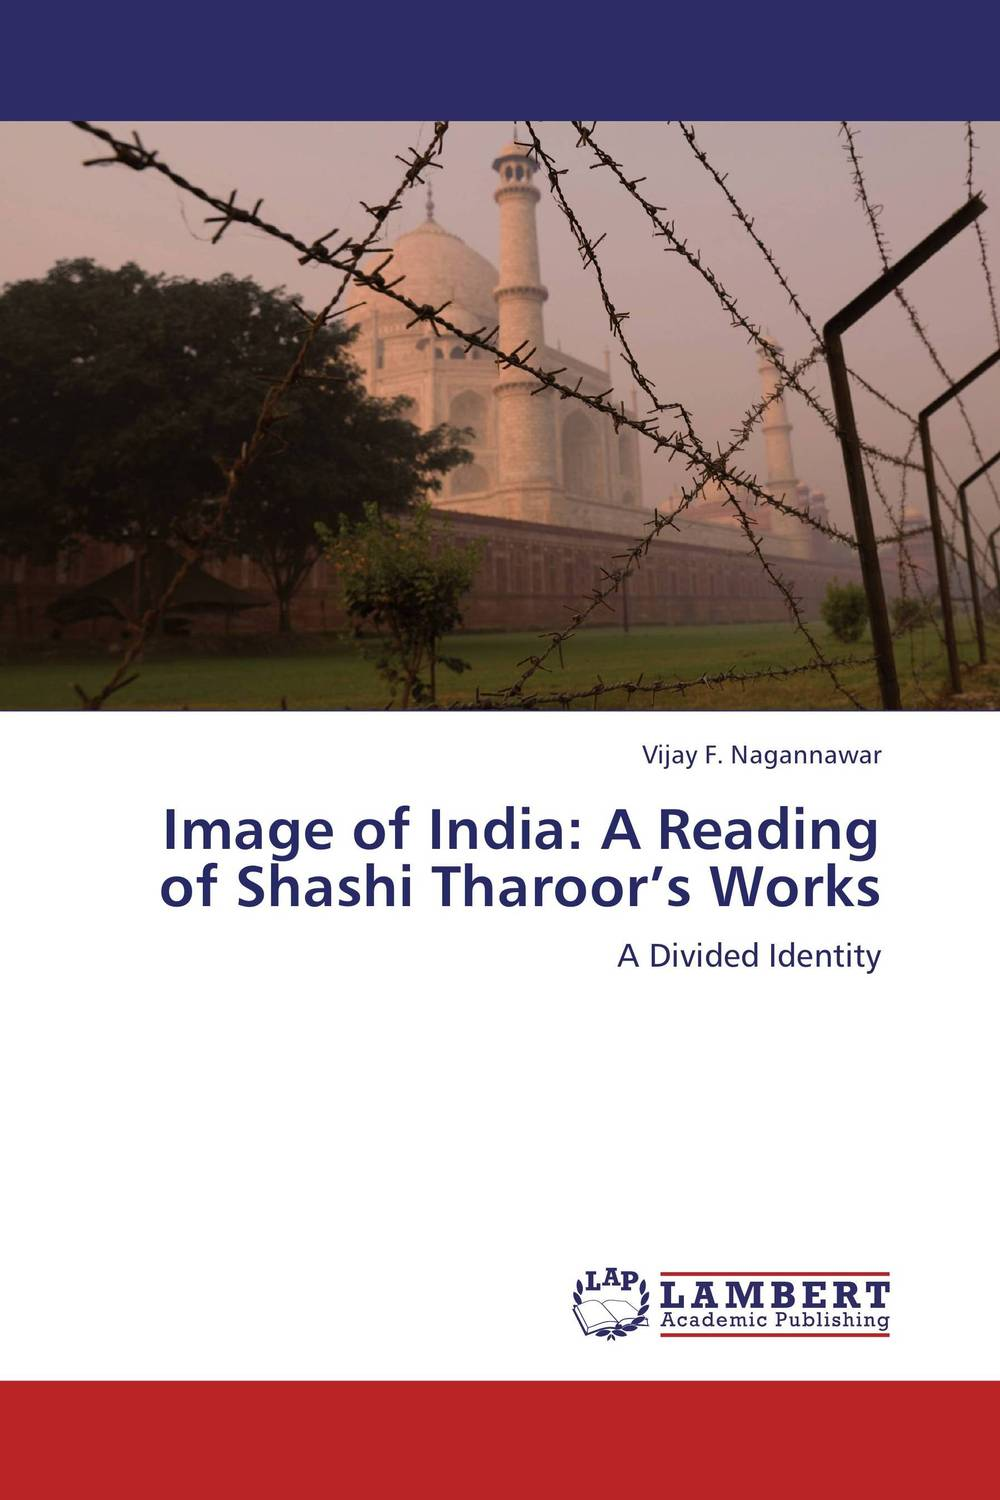 Image of India: A Reading of Shashi Tharoor's Works салфетки heart of india 200 5